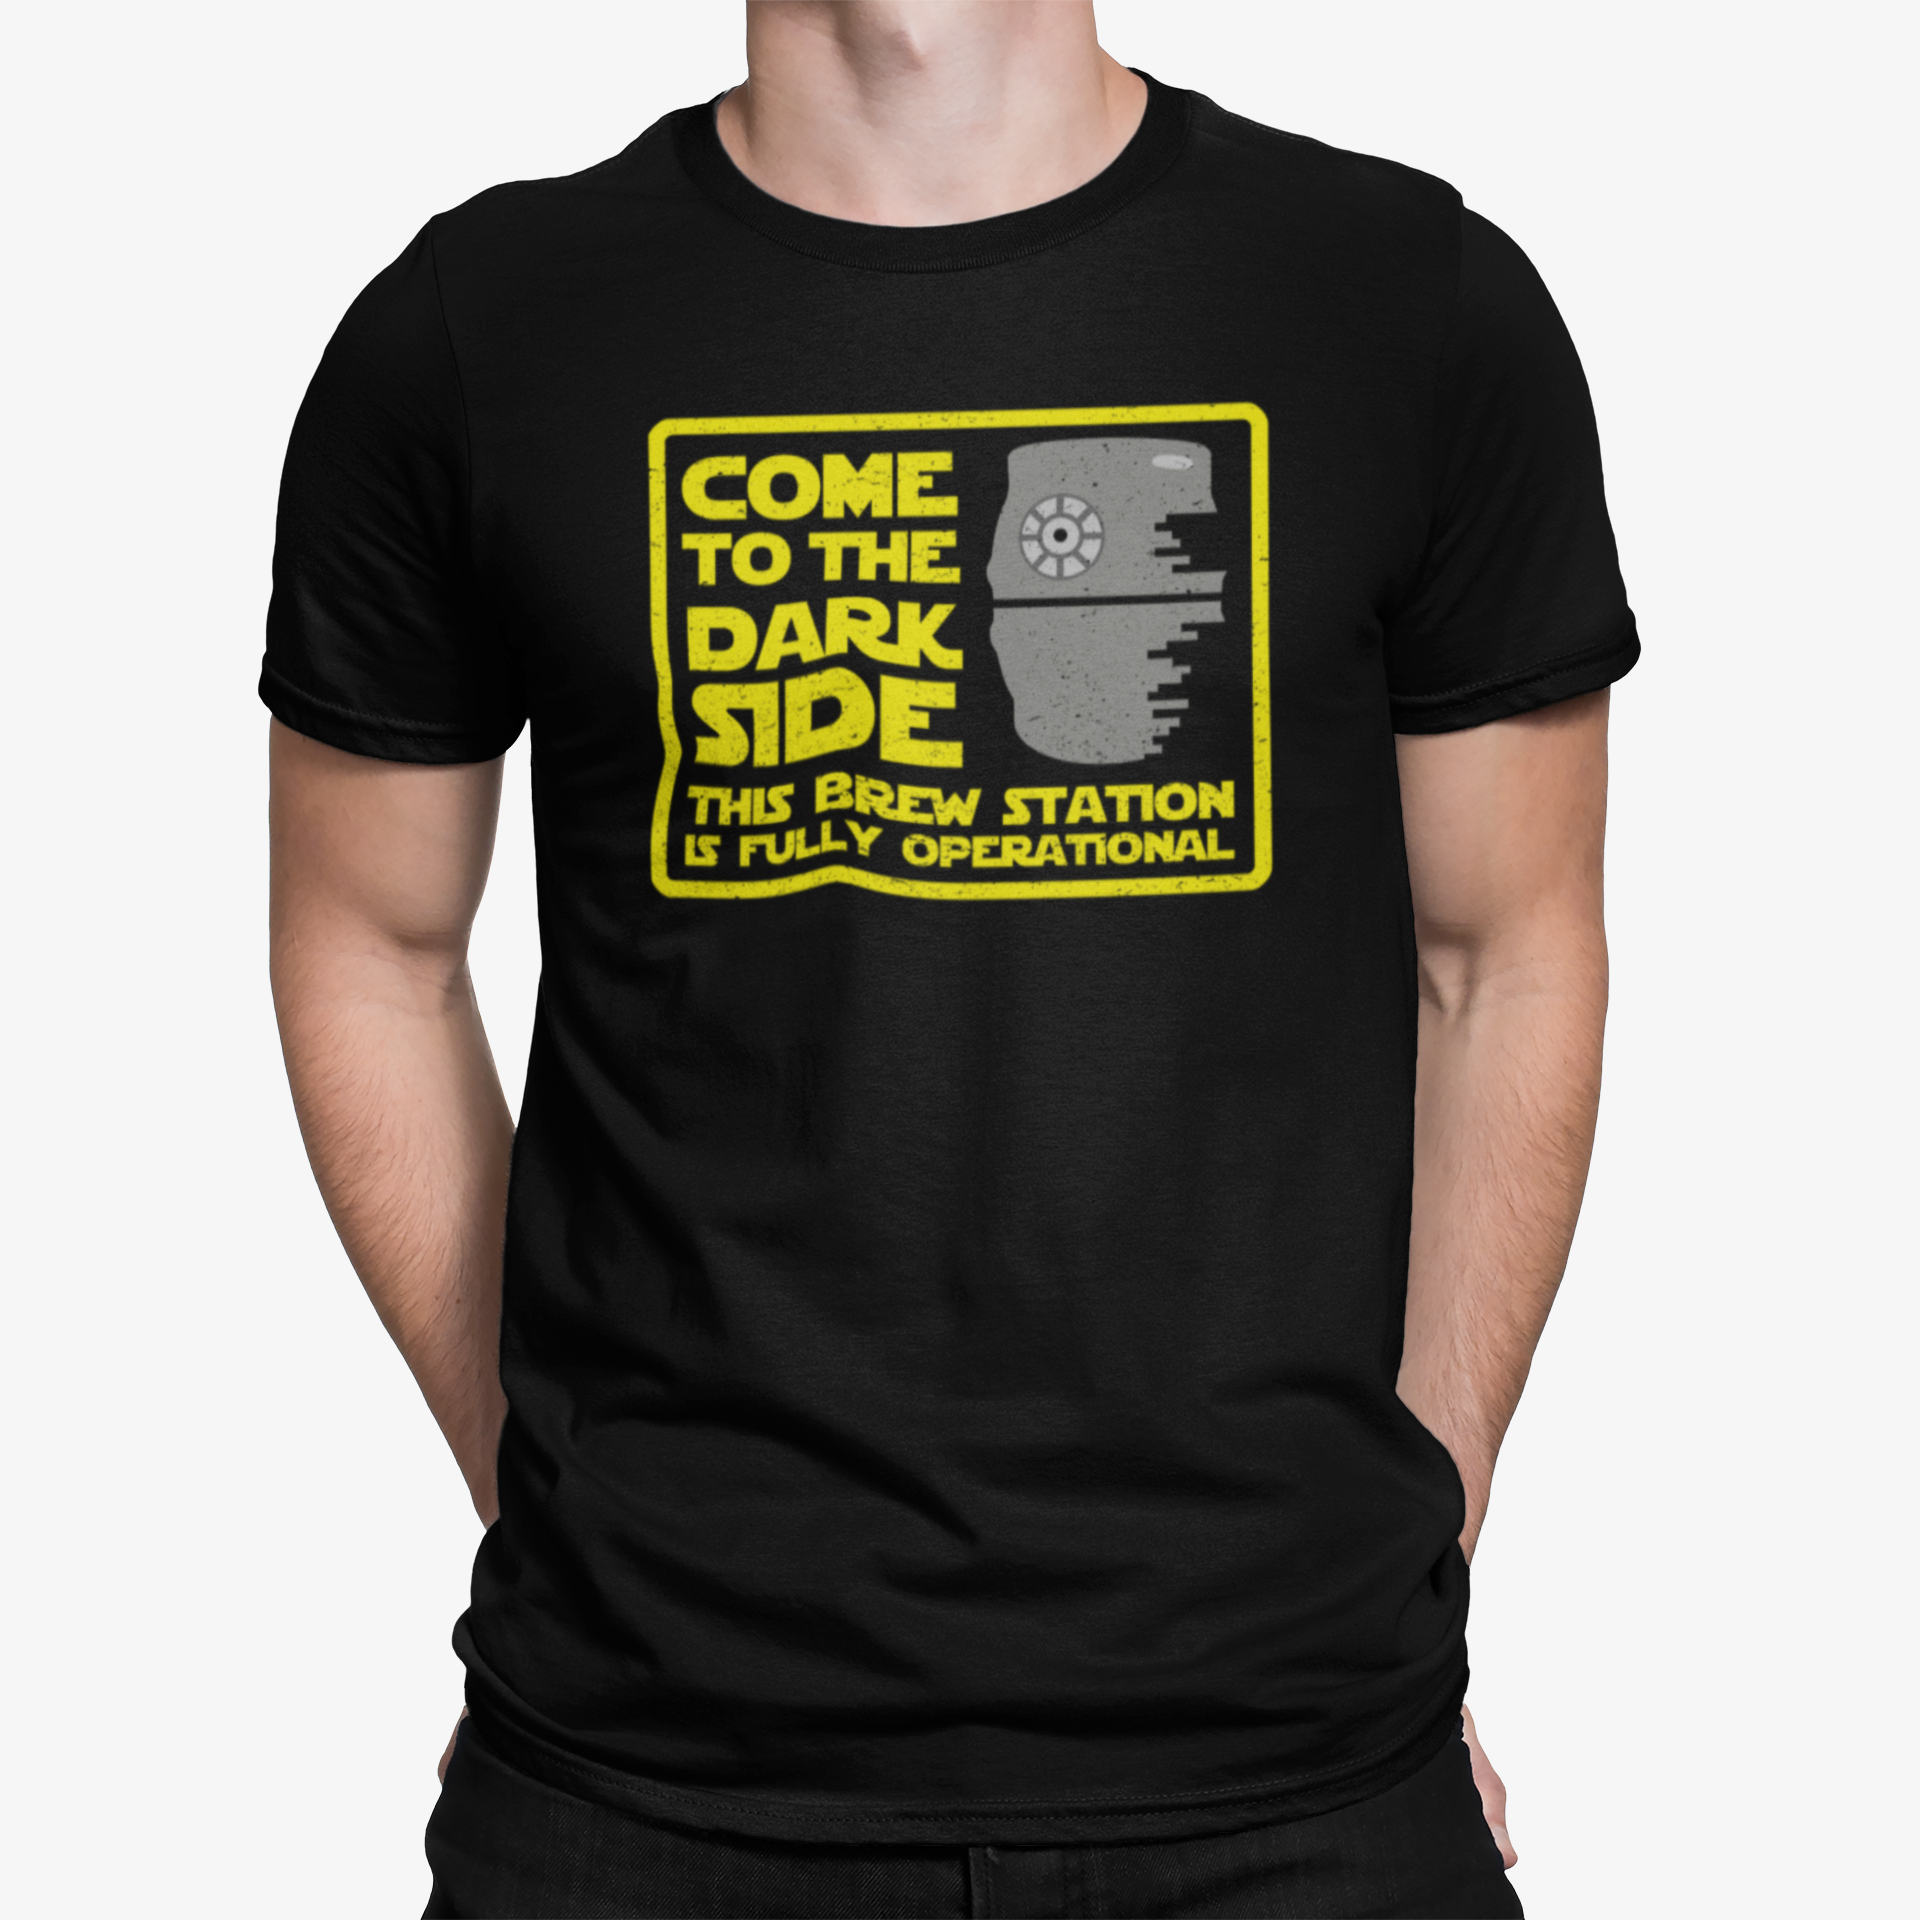 Come To The Dark Side, This Brew Station Is Fully Operational T-Shirt